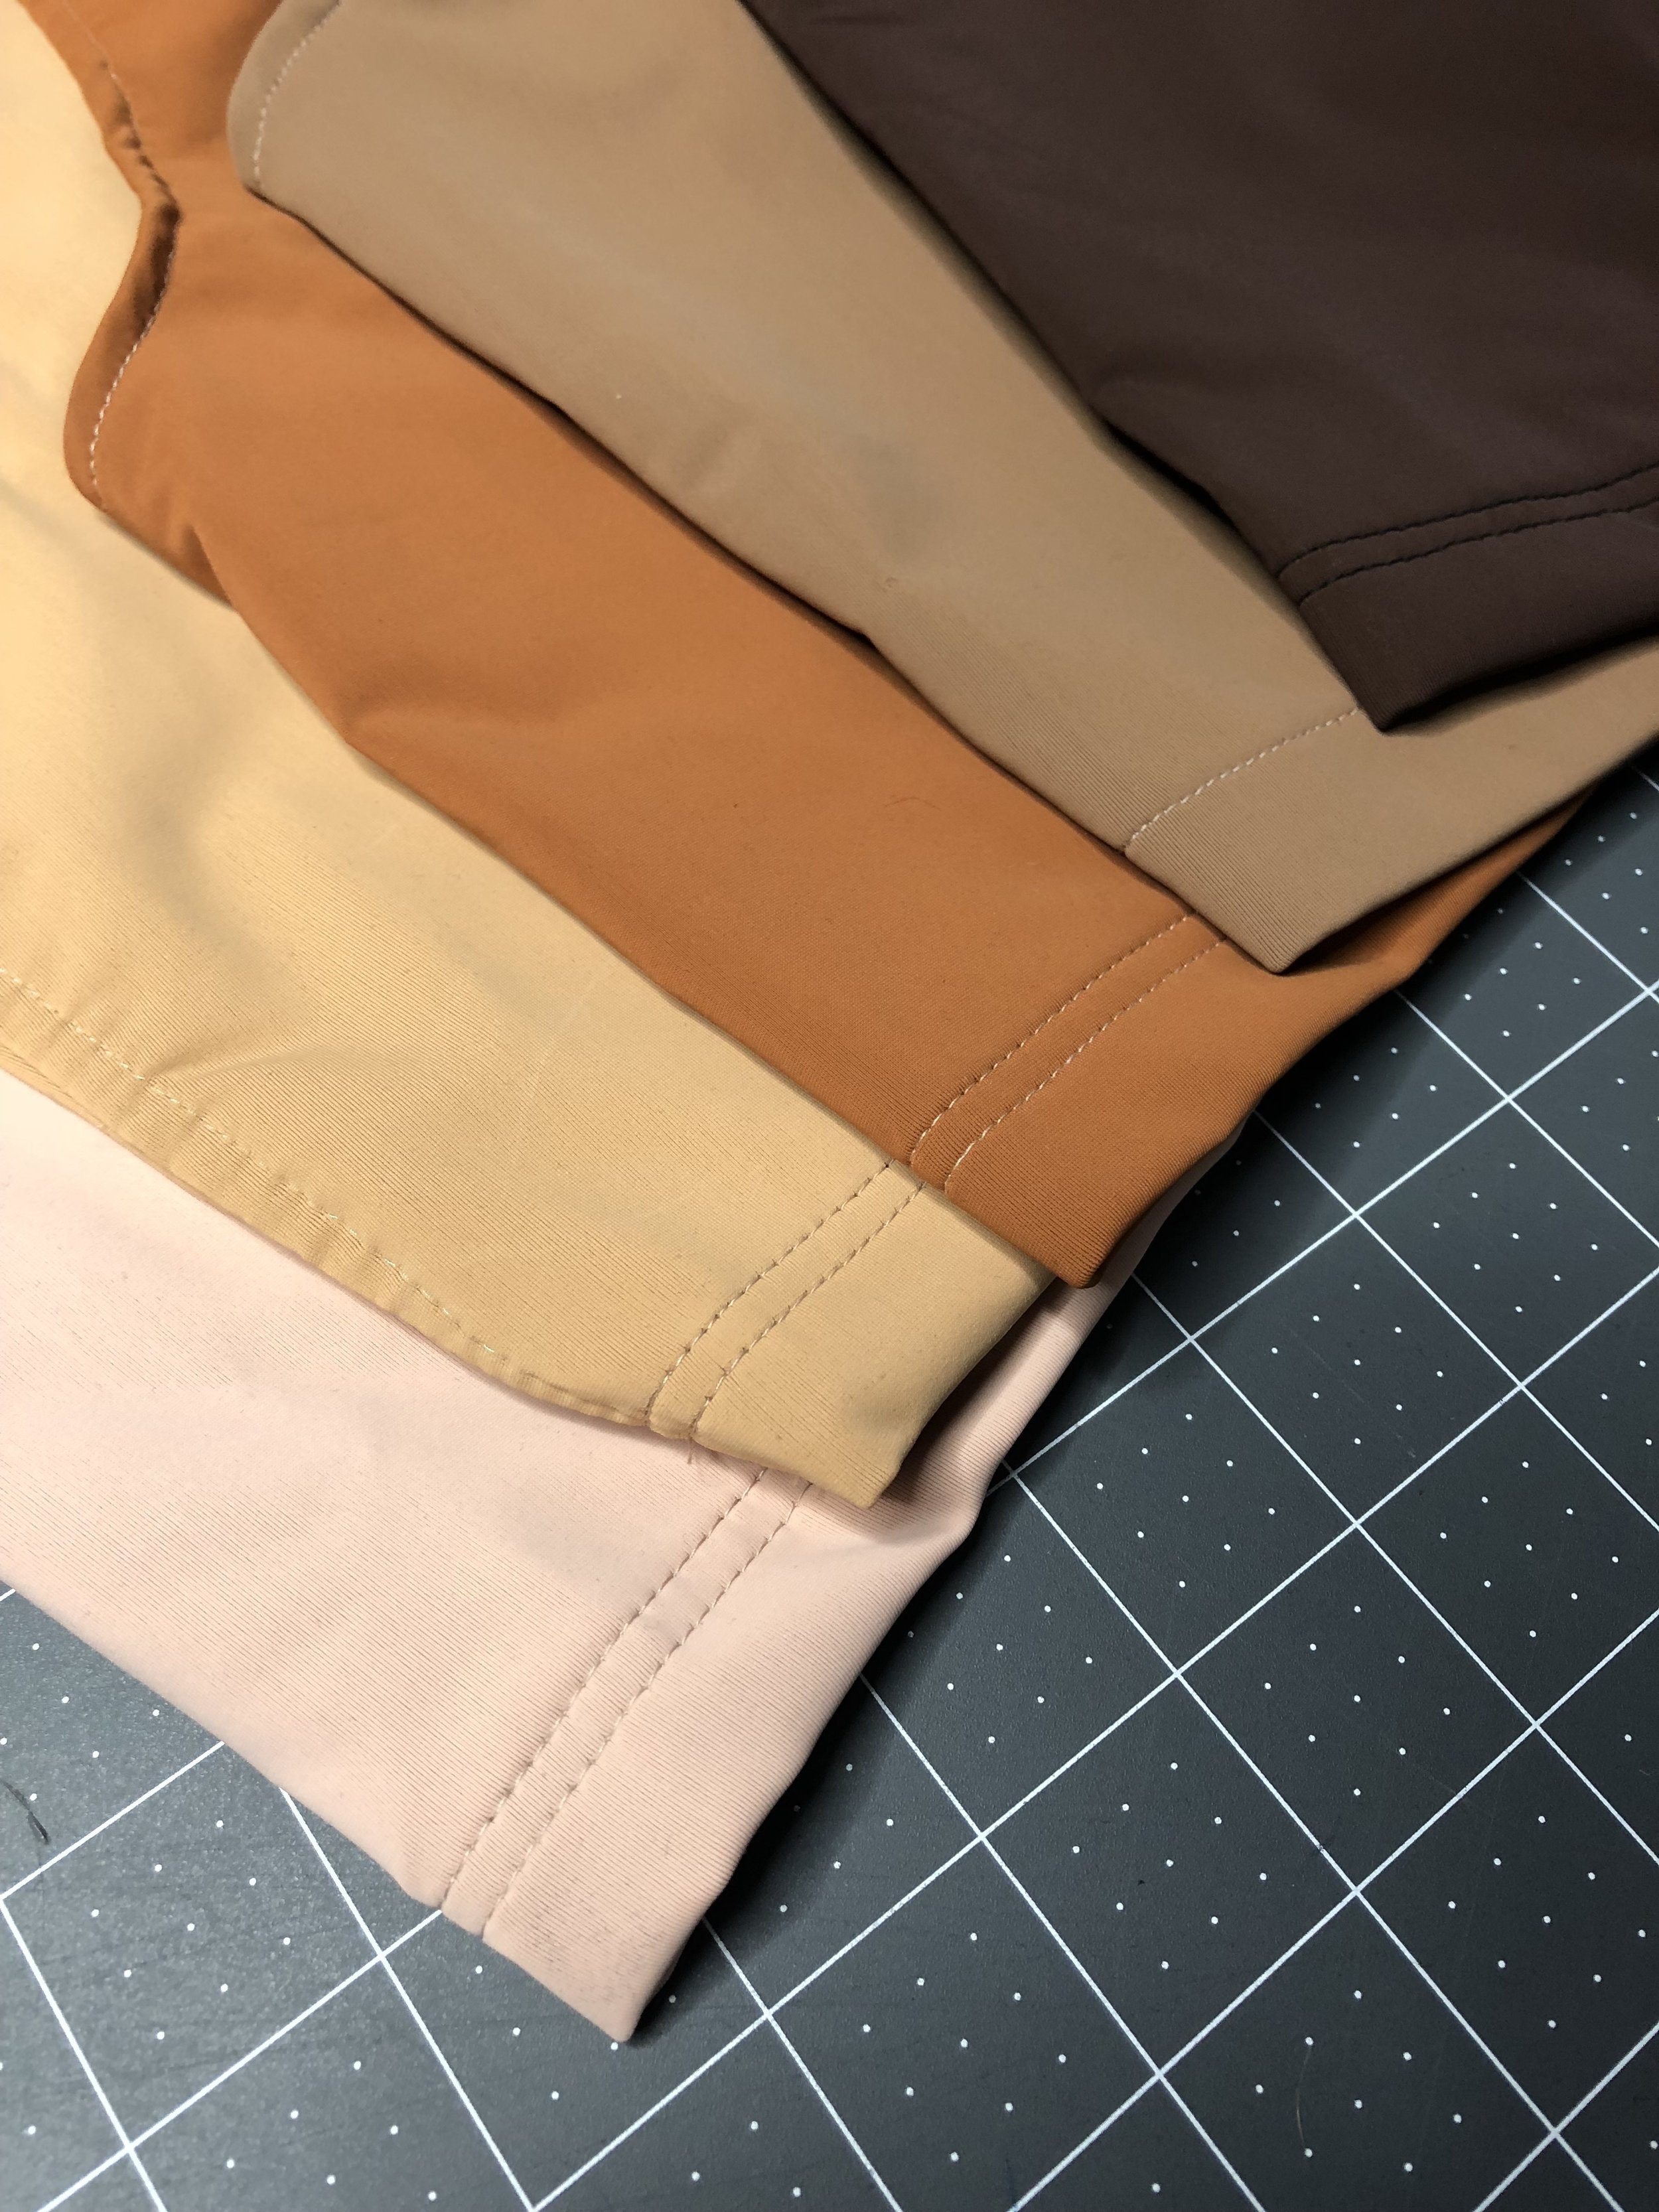 Our current range of colors from left to right: Rose, Sand, Copper, Oak and Umber.